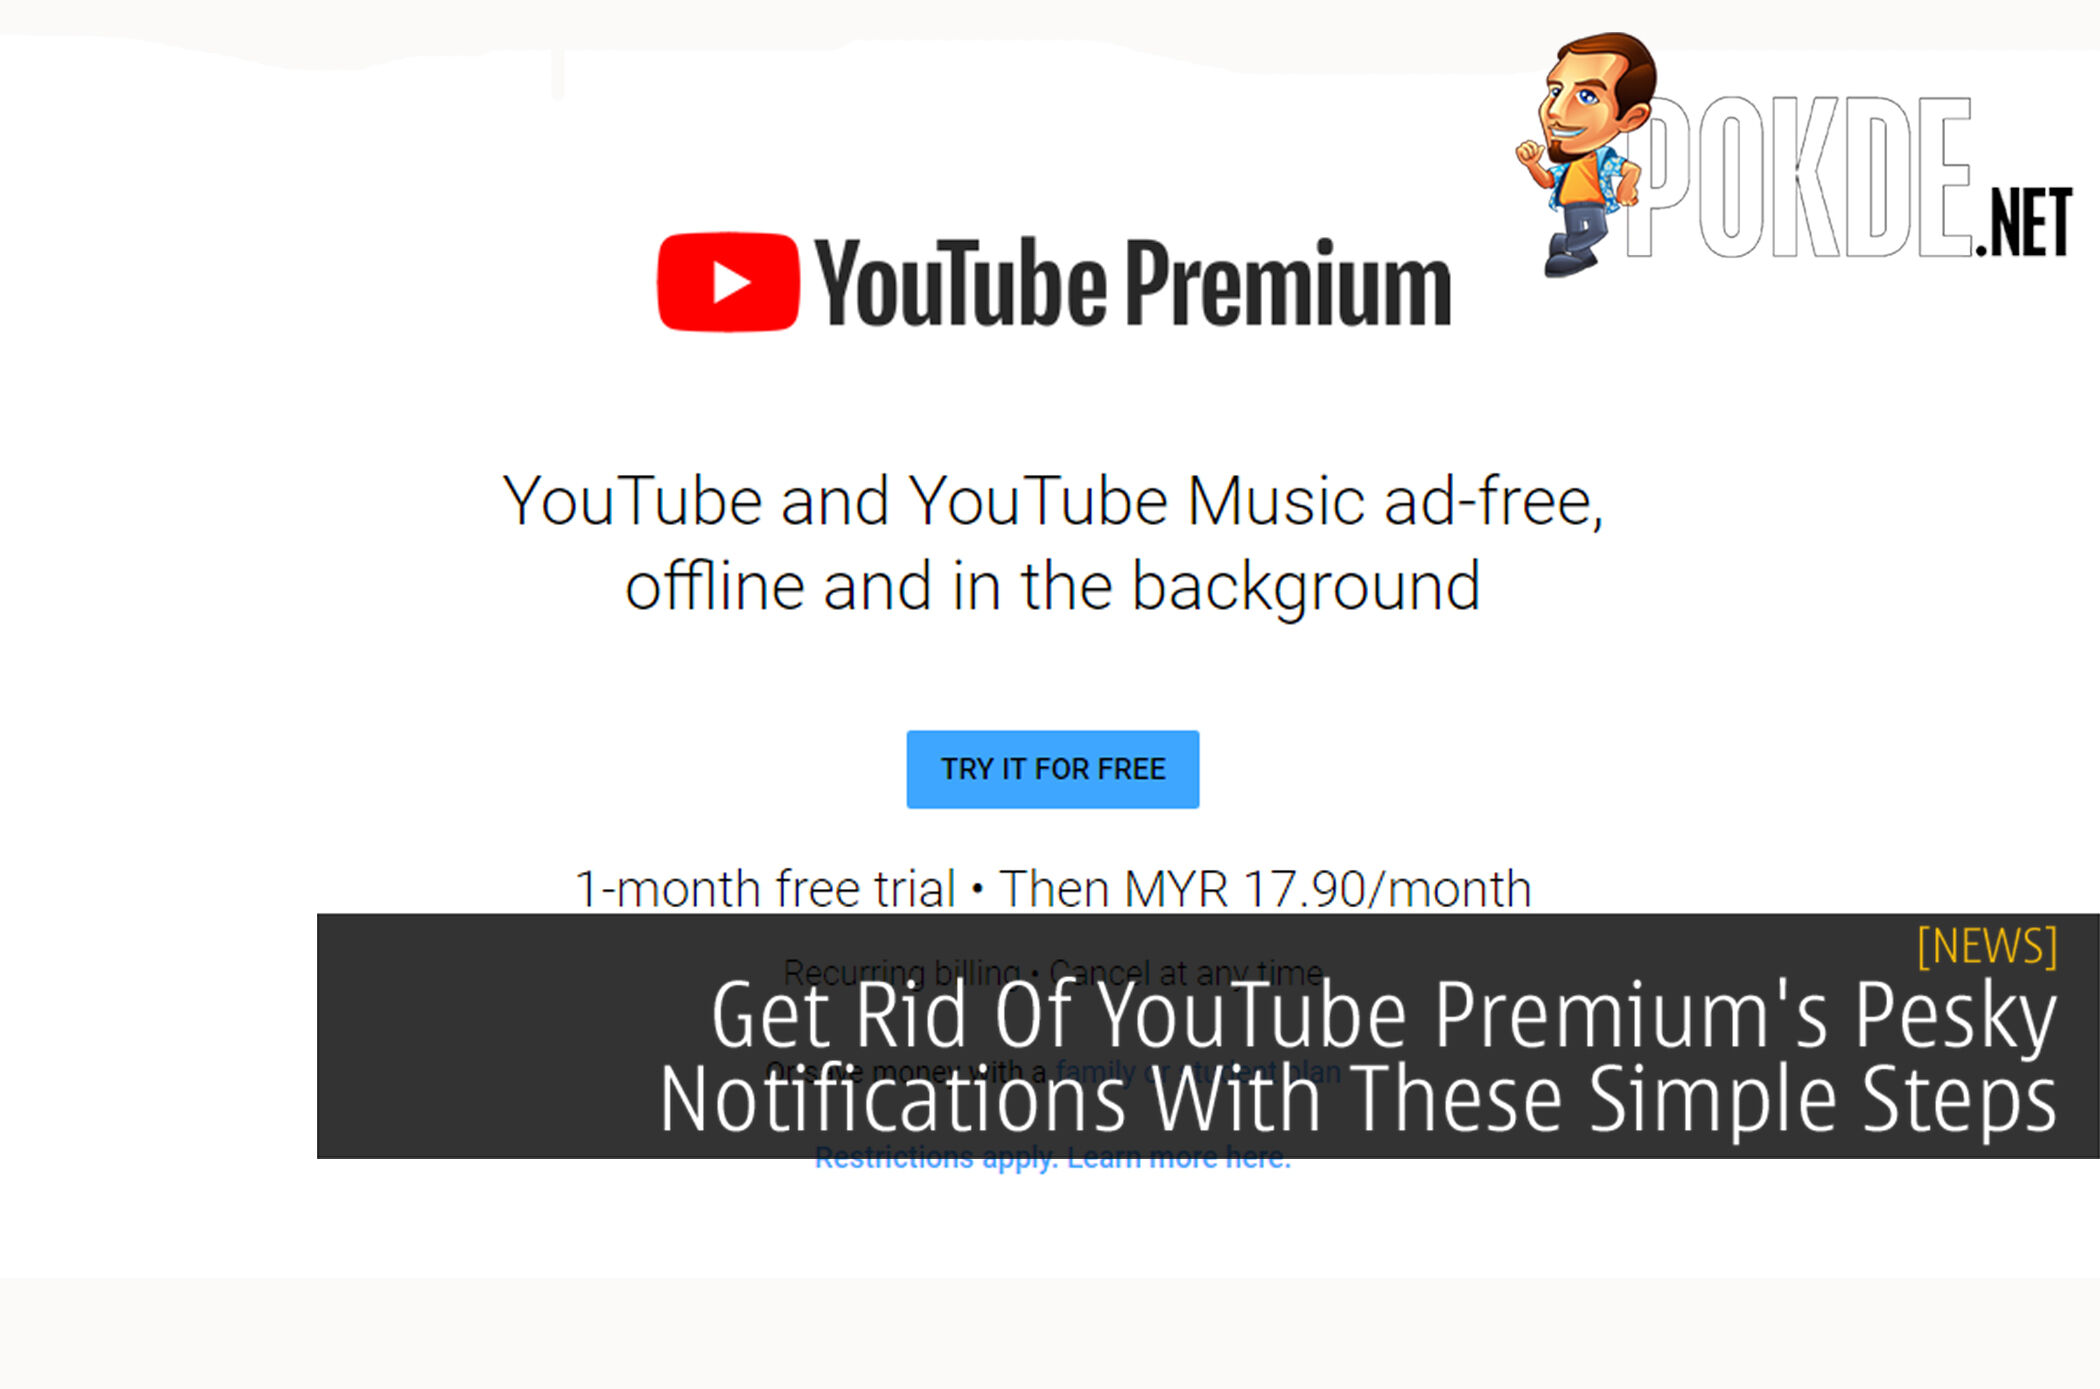 Get Rid Of YouTube Premium's Pesky Notifications With These Simple Steps 8